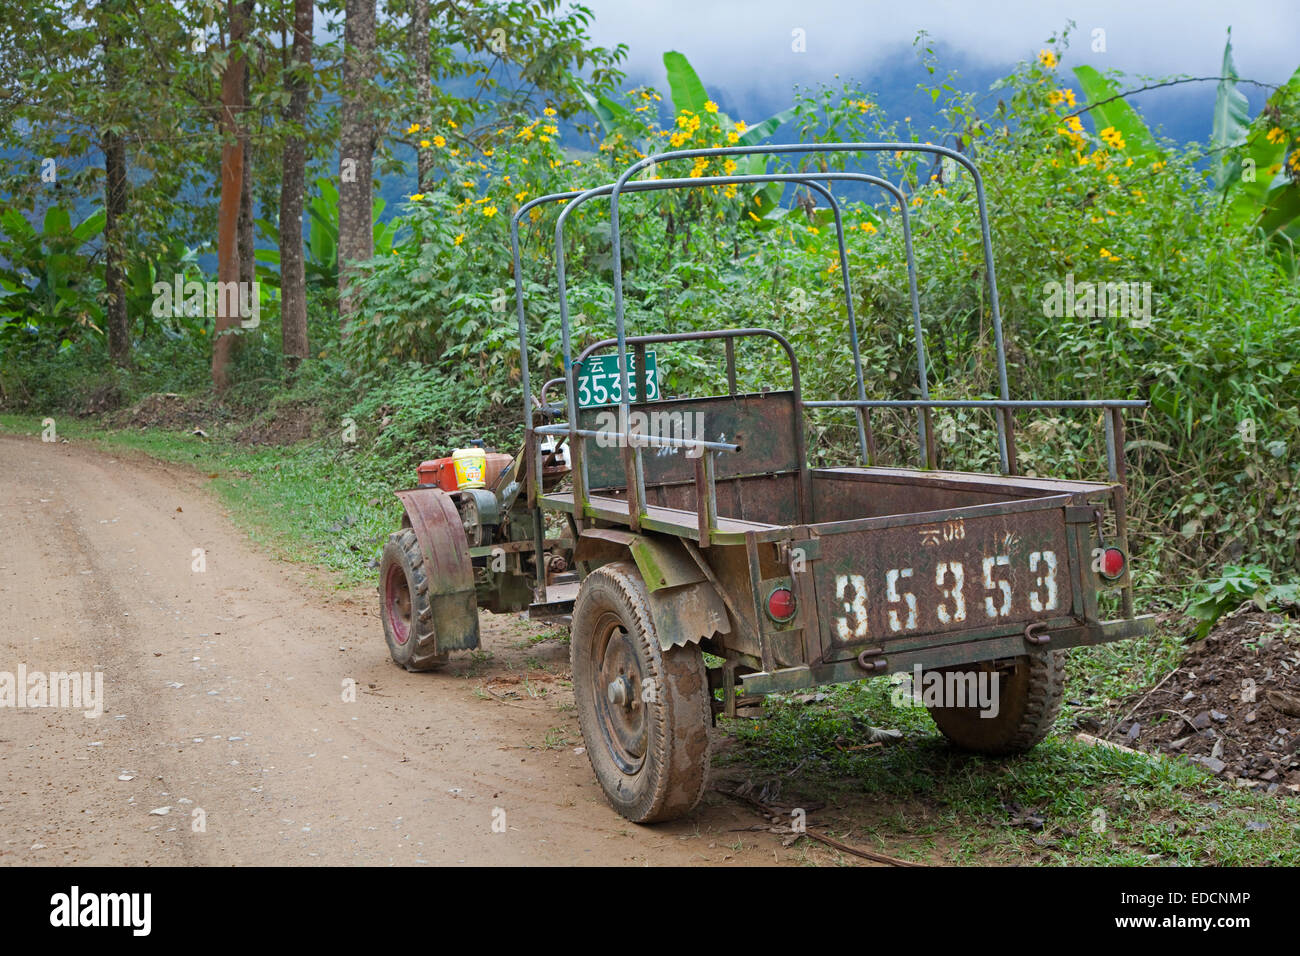 Typical Chinese two-wheel tractor with trailer in the Yunnan province, China - Stock Image